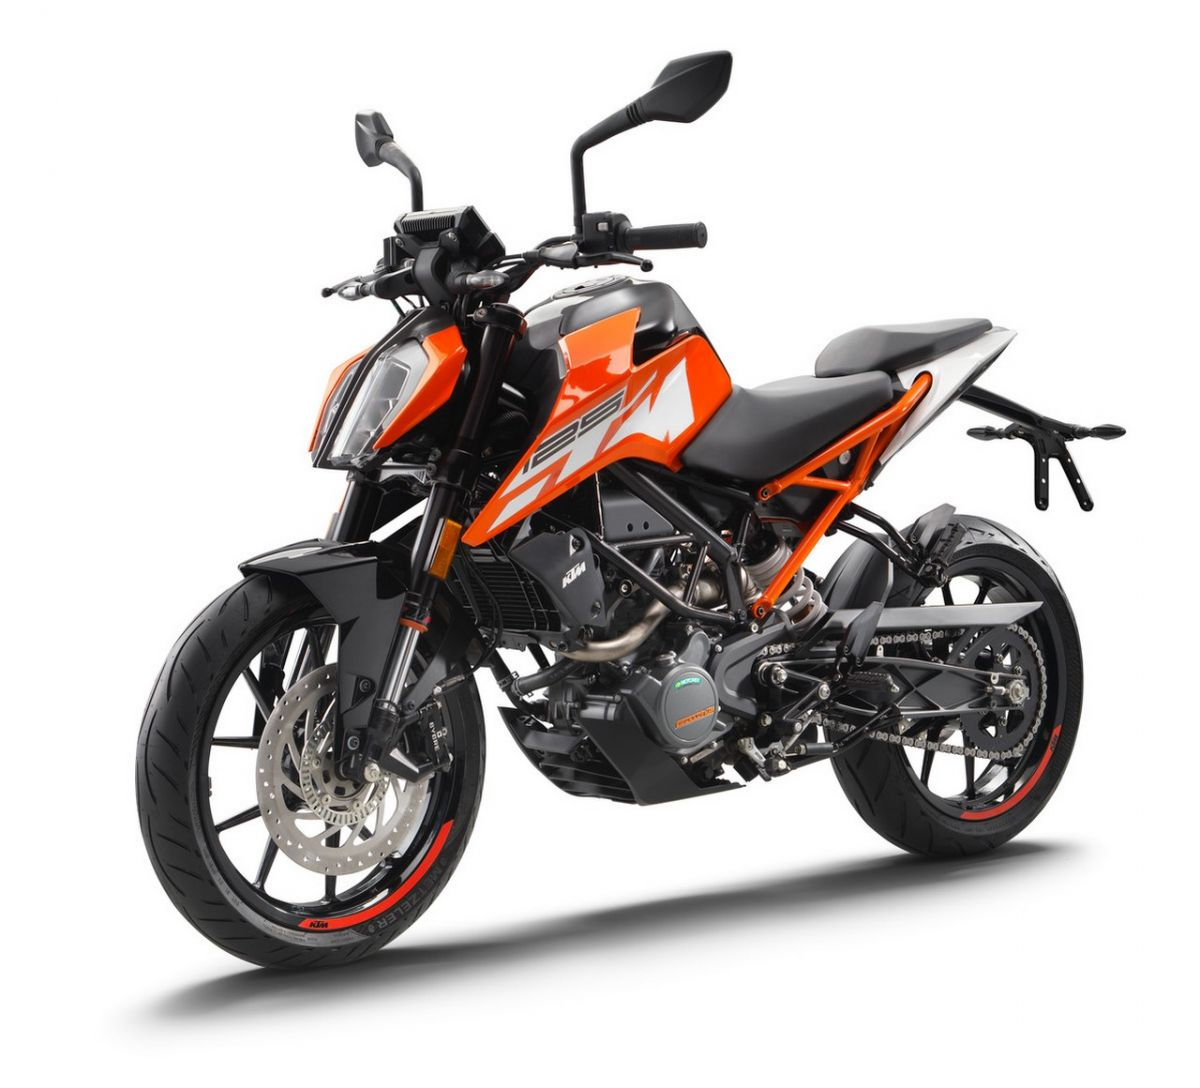 Price of this KTM bike hiked by 5000